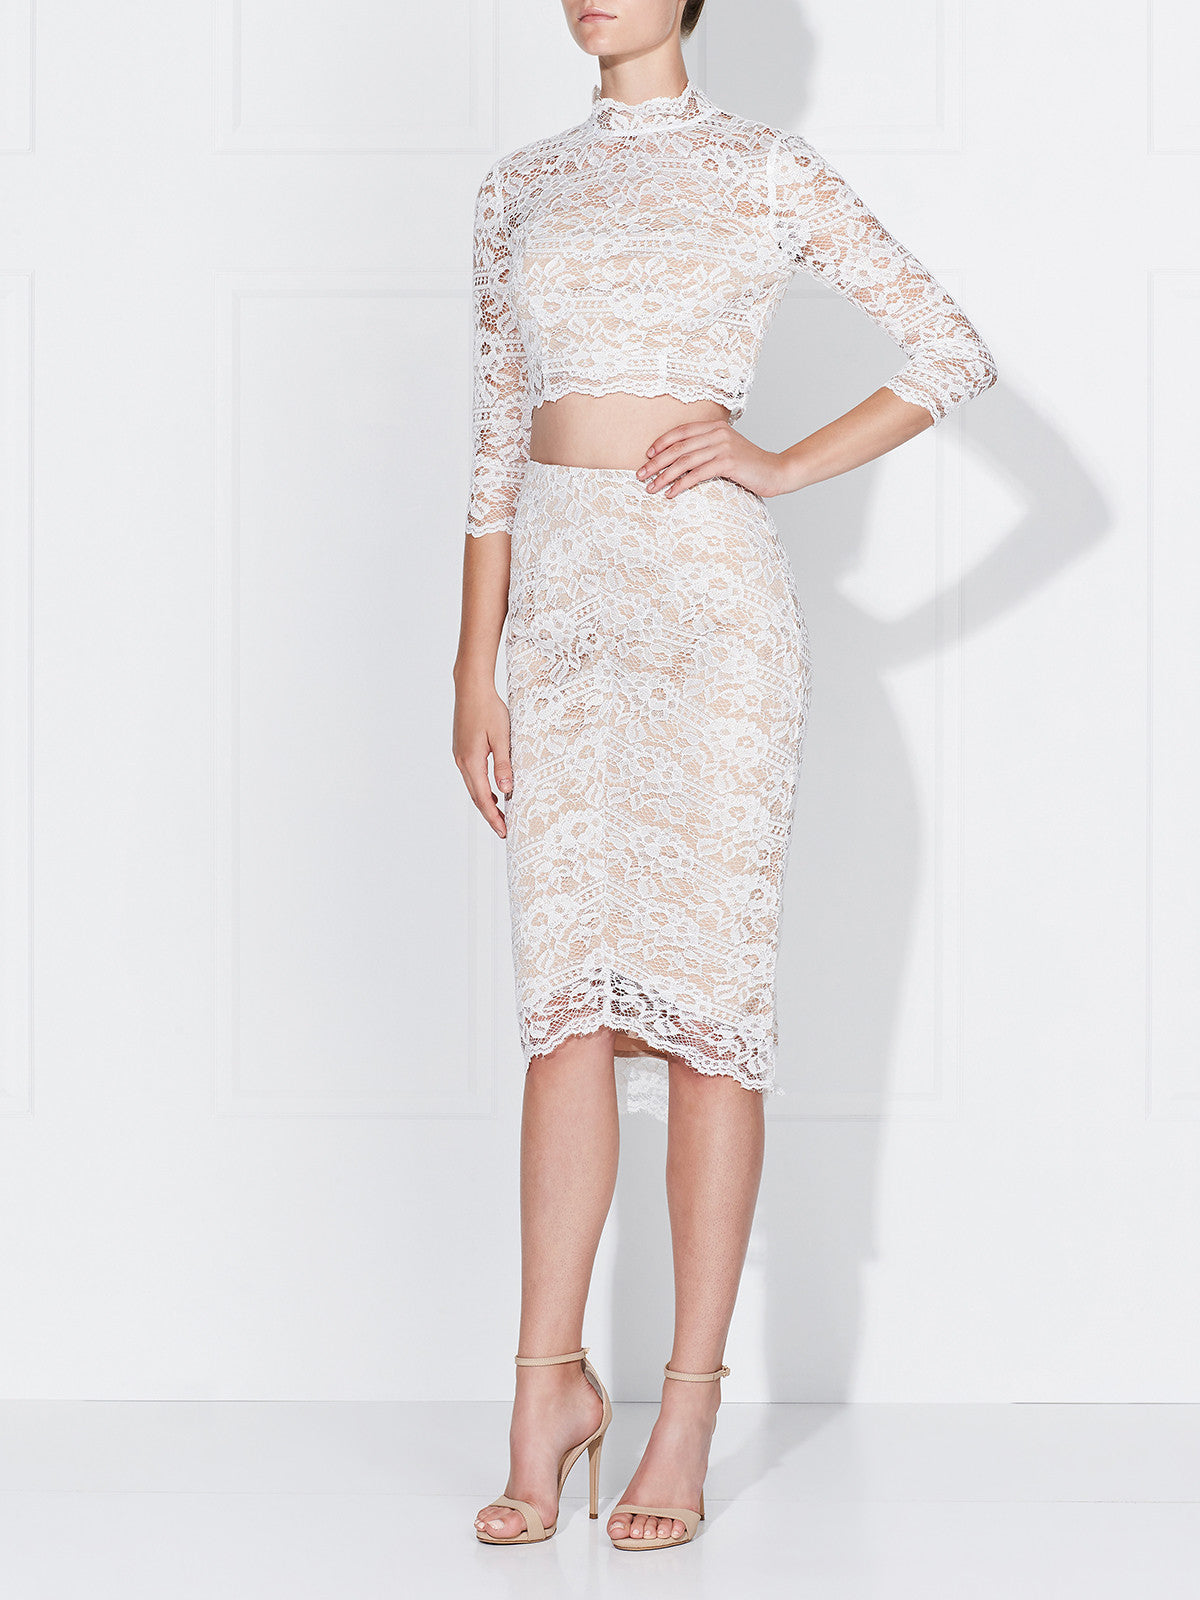 ROSE LACE TOP- IVORY/NUDE